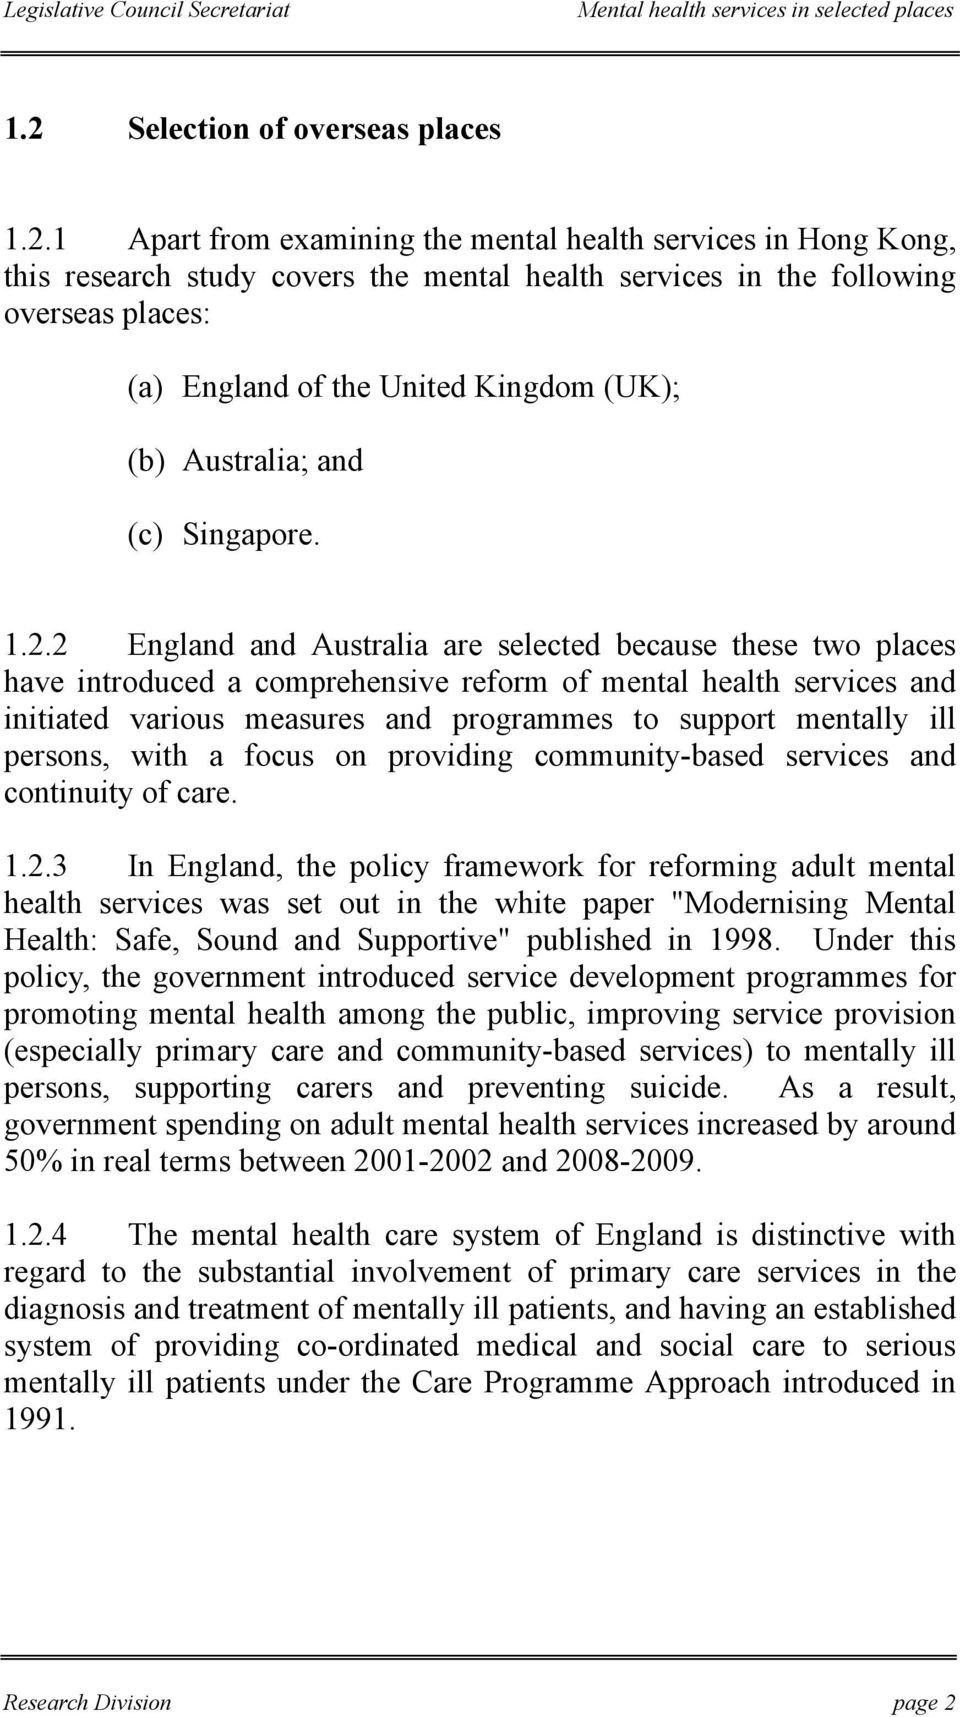 2 England and Australia are selected because these two places have introduced a comprehensive reform of mental health services and initiated various measures and programmes to support mentally ill